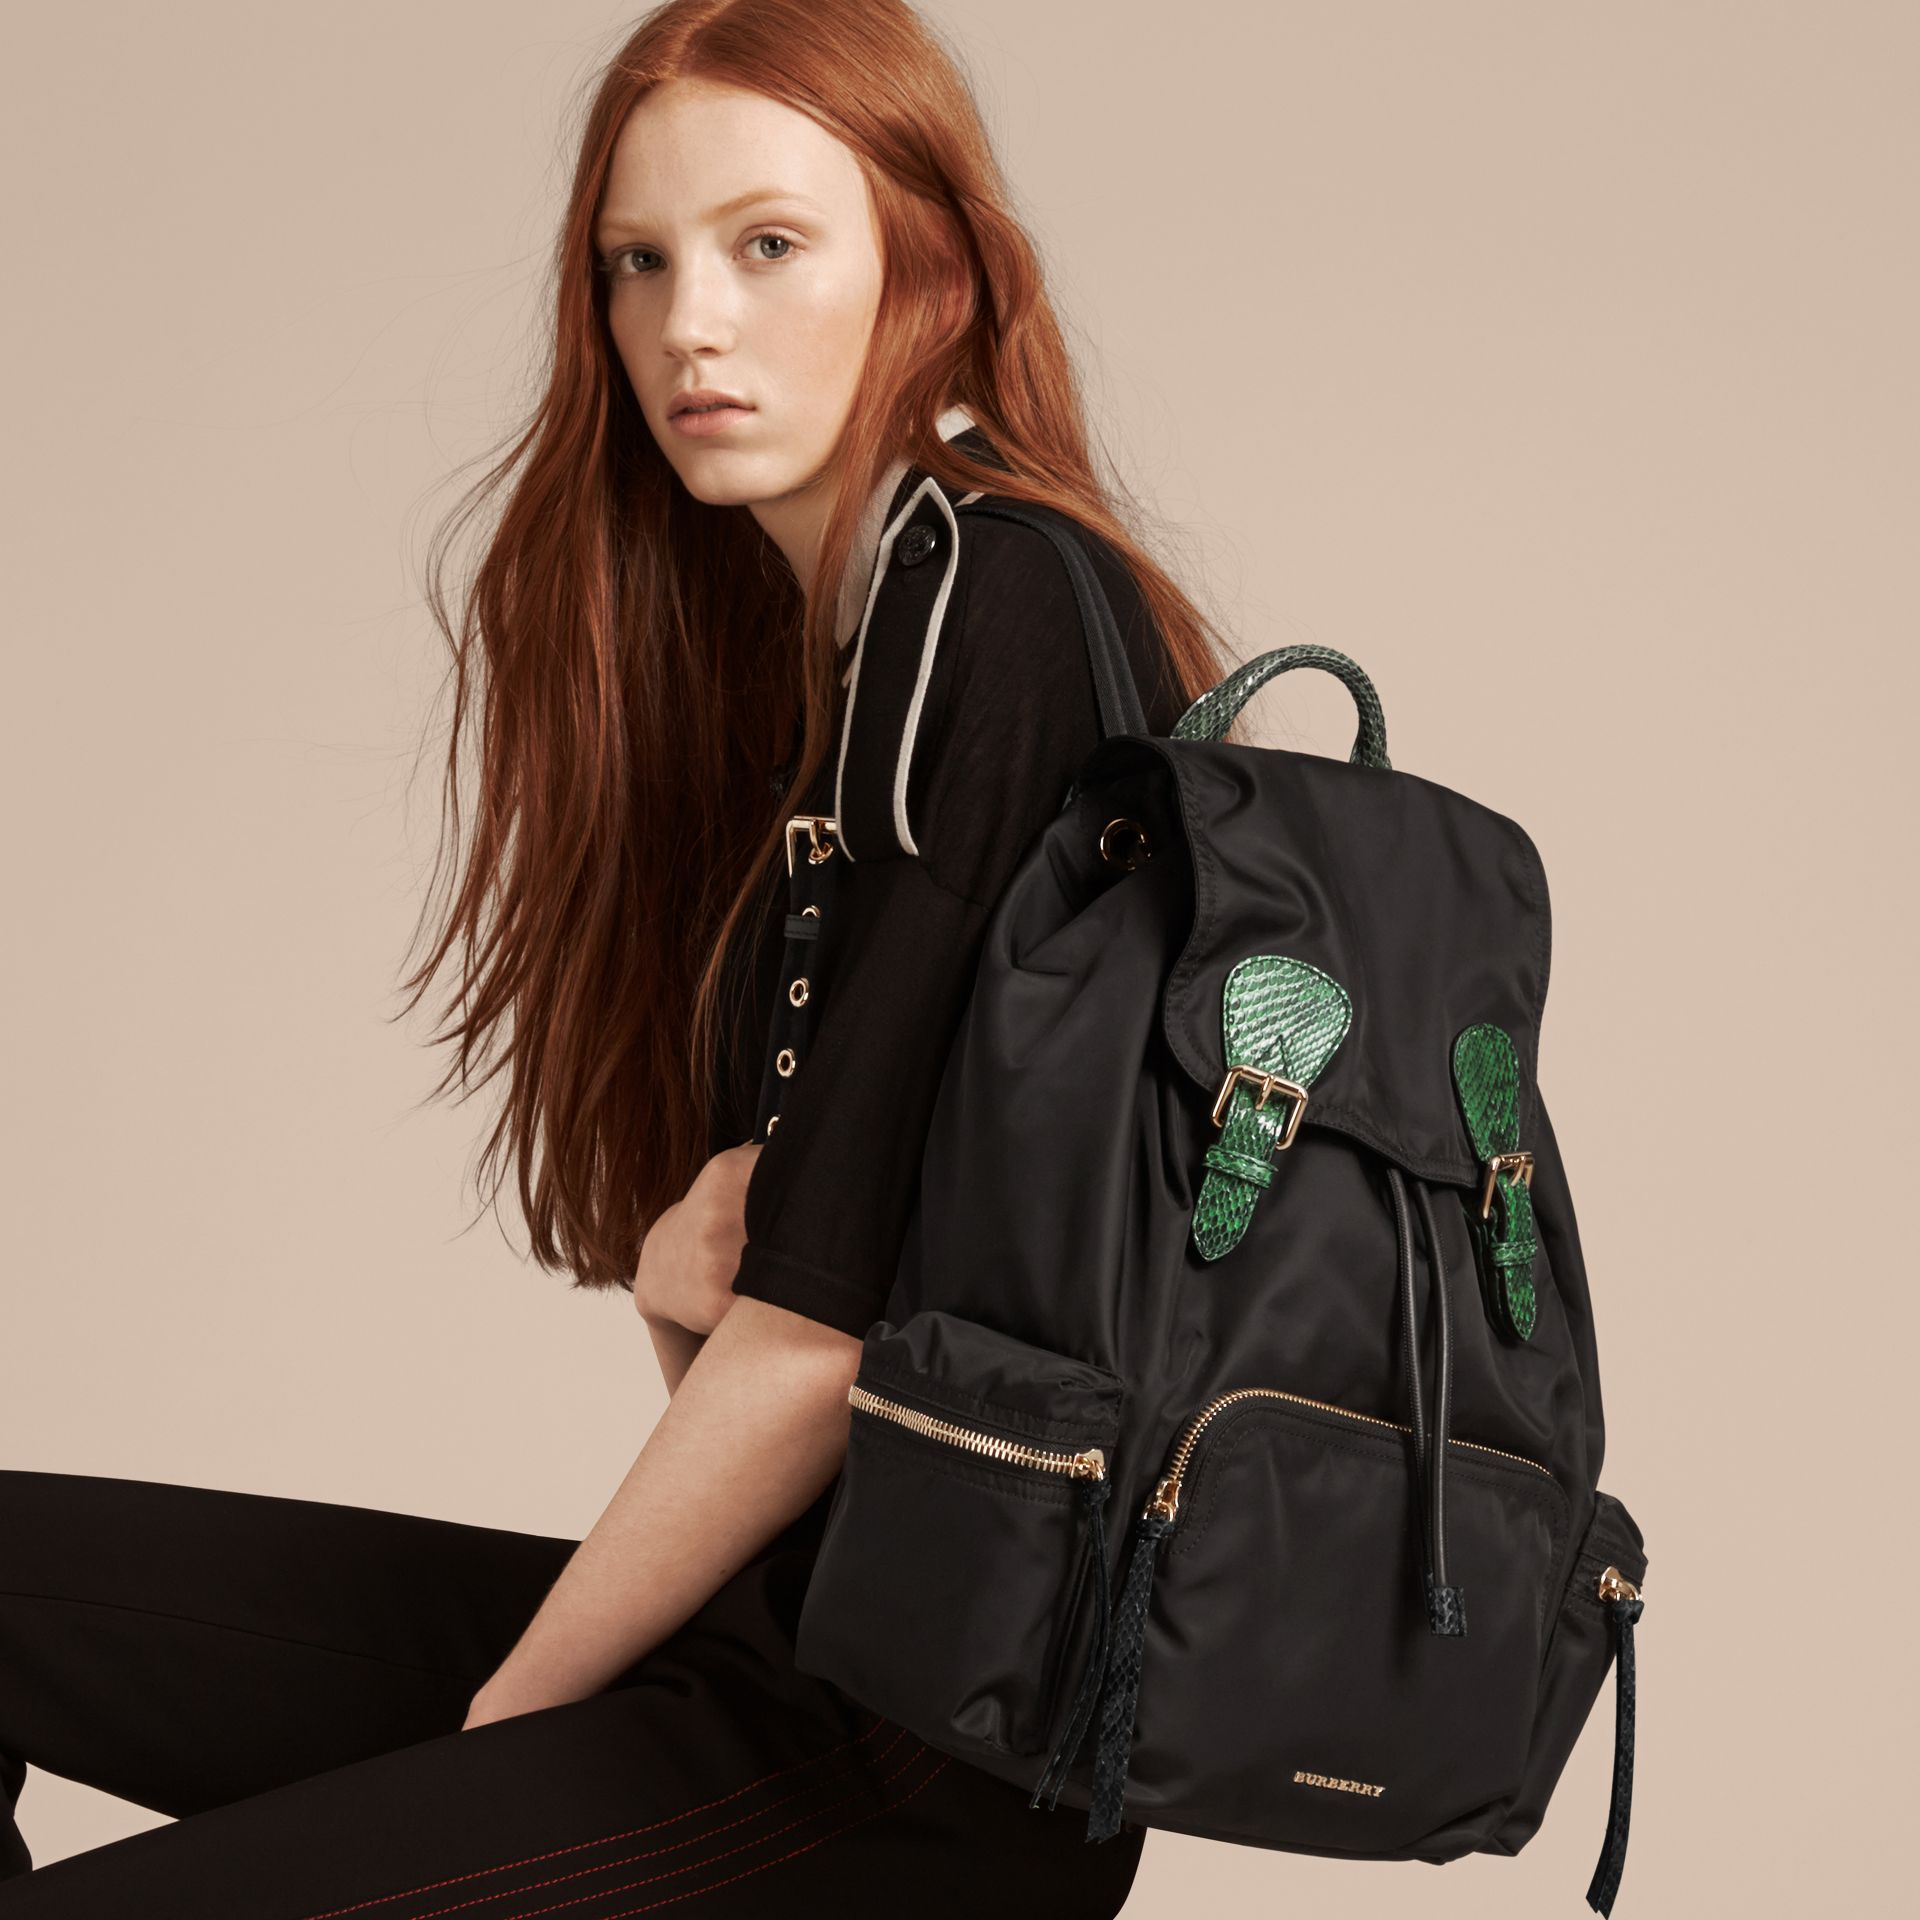 Black/bright green The Large Rucksack in Technical Nylon and Snakeskin Black/bright Green - gallery image 3